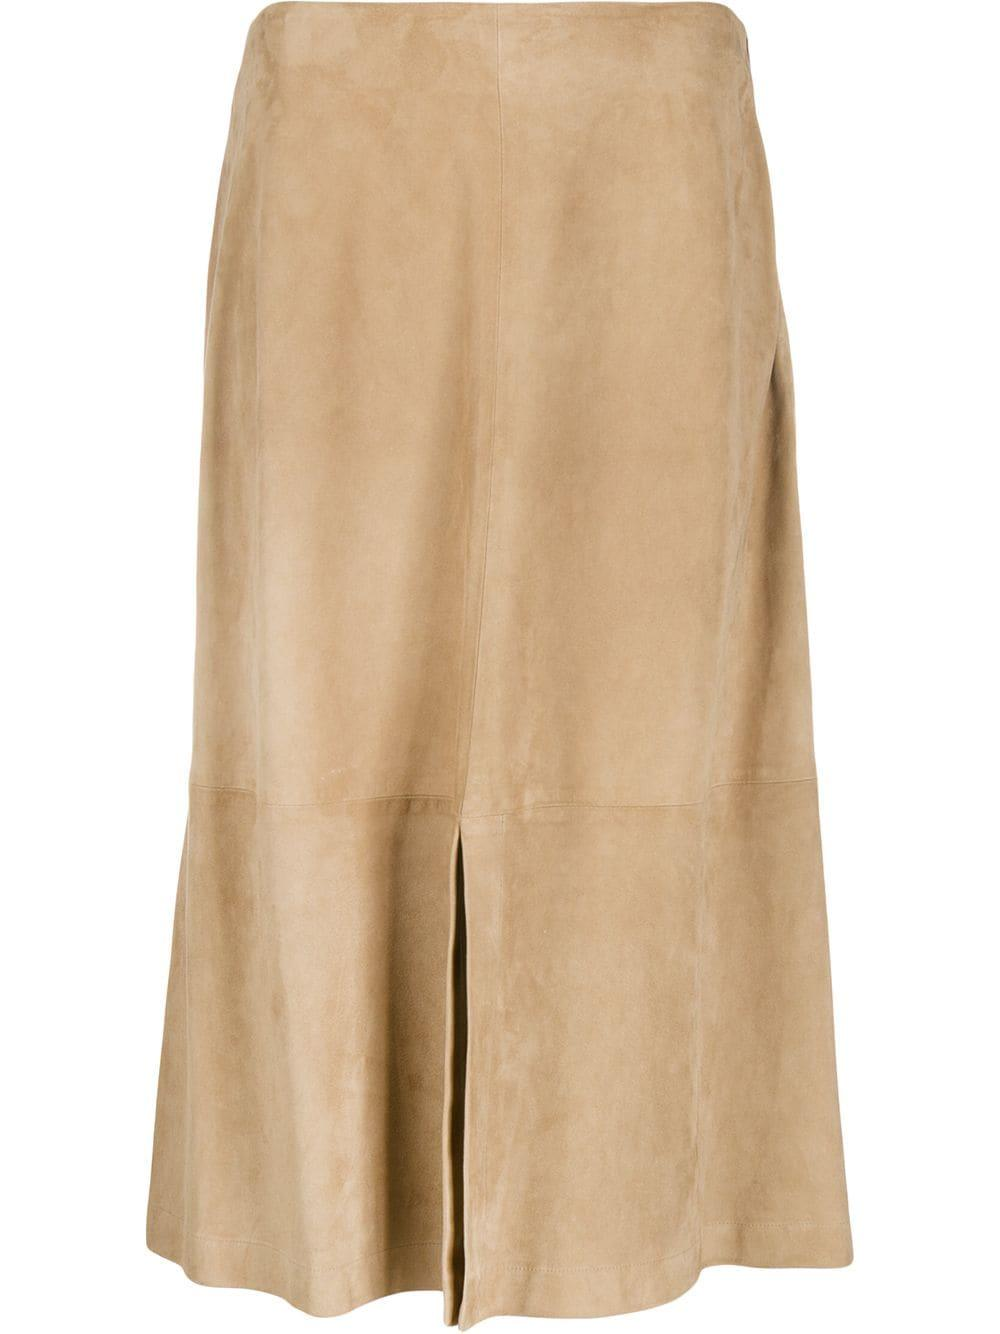 Suede Skirt With Front Slit Item # PLD270B917